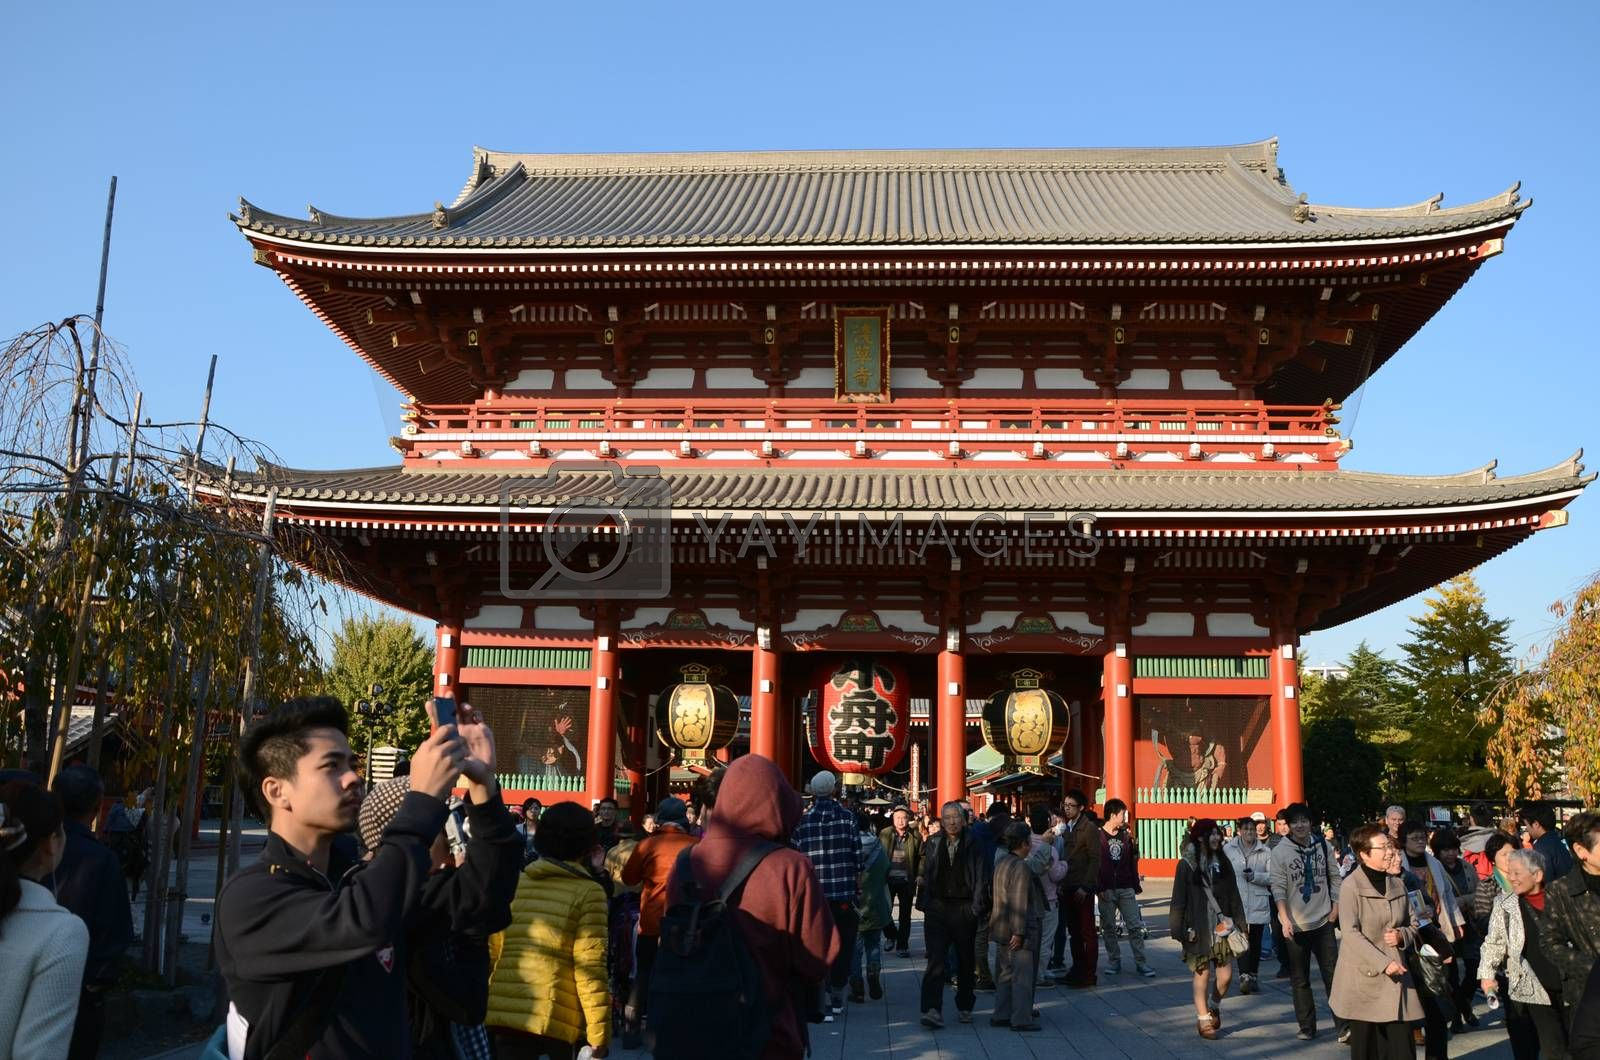 TOKYO, JAPAN - NOV 21: The Buddhist Temple Senso-ji is the symbol of Asakusa and attracting thousands of tourists on November 21, 2013 in Tokyo, Japan.